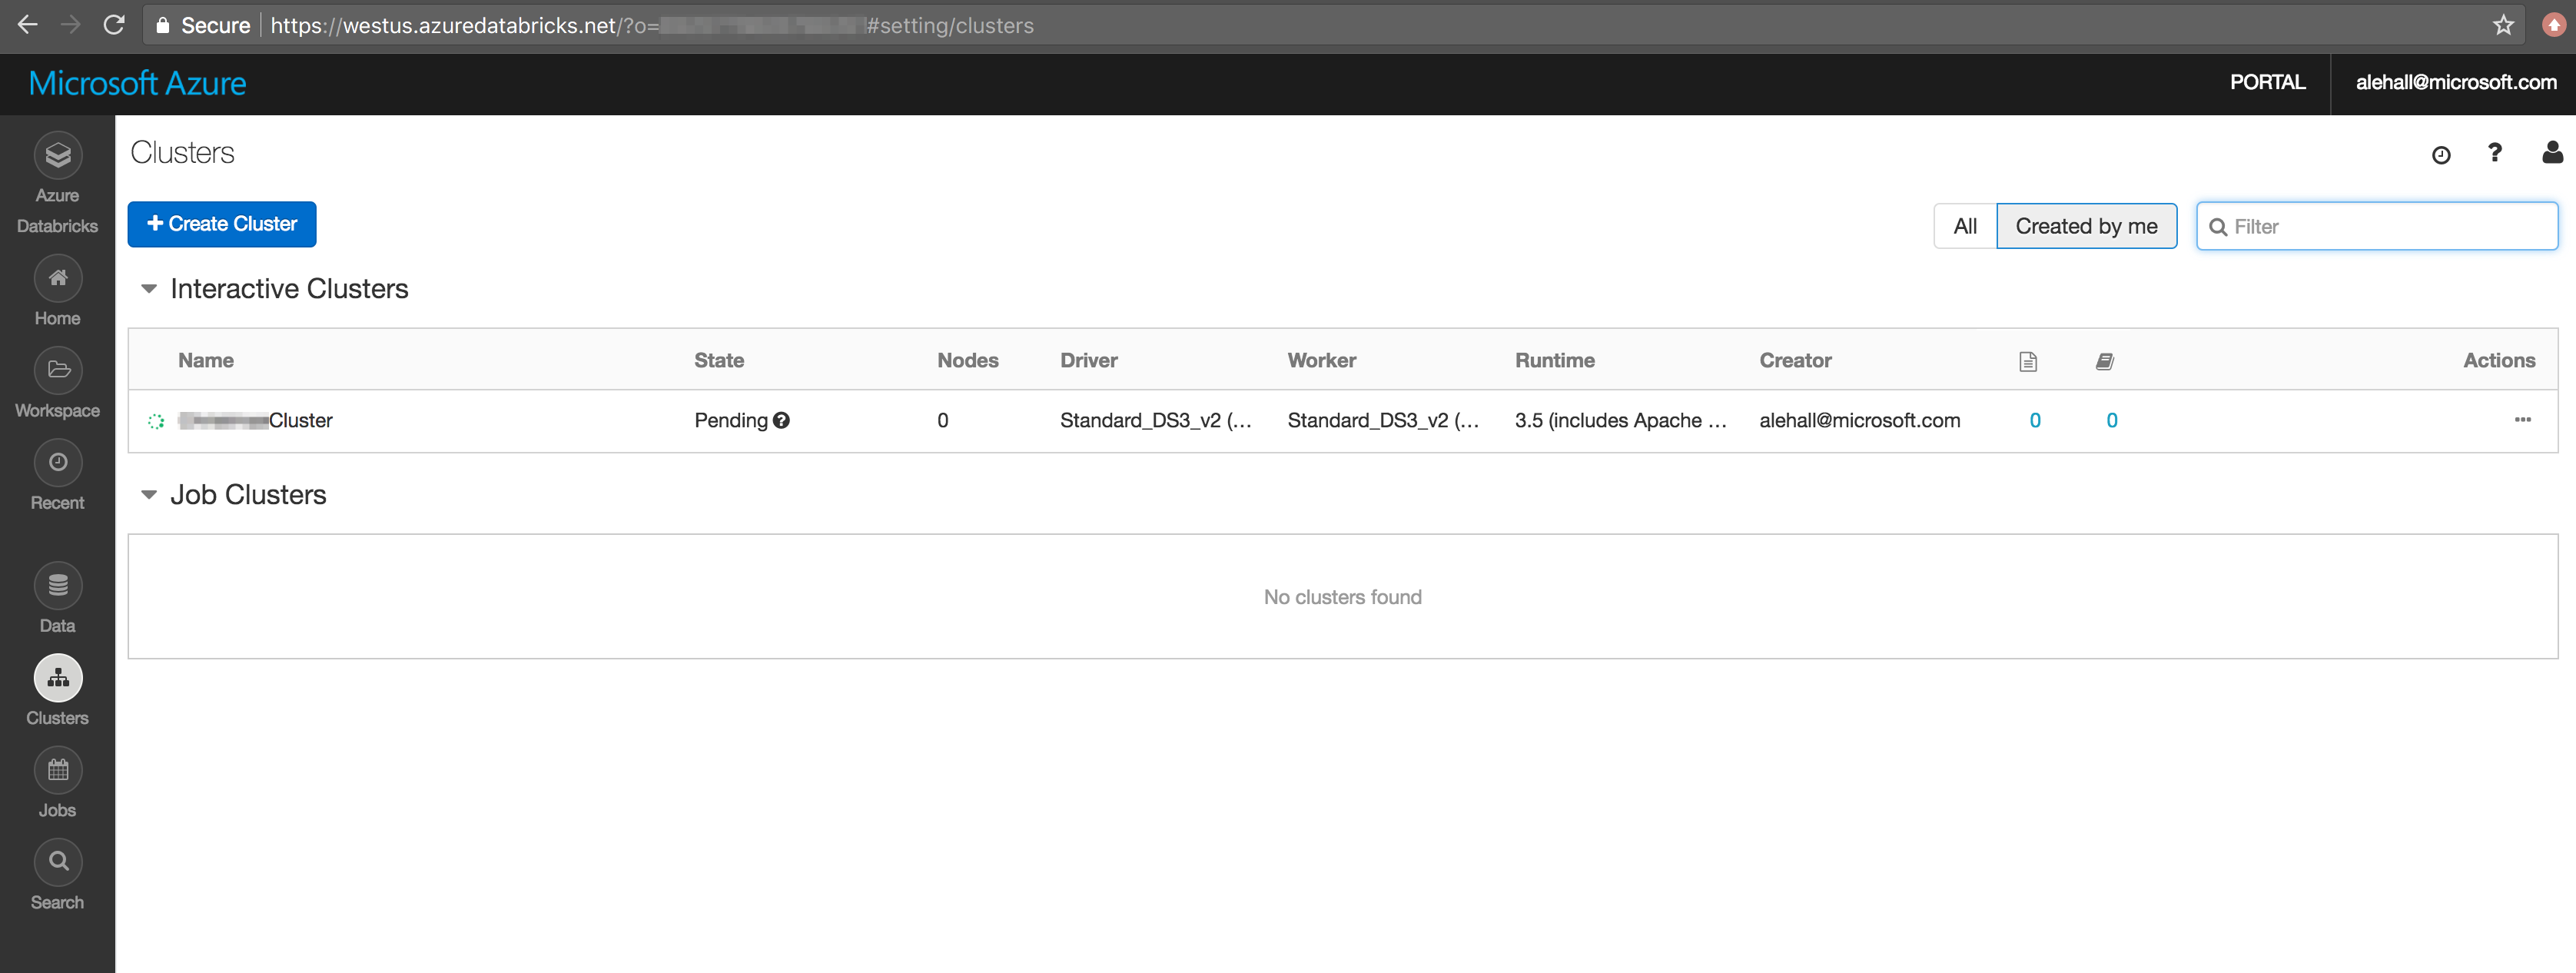 Using Spark on Databricks to consume data from Event Hubs